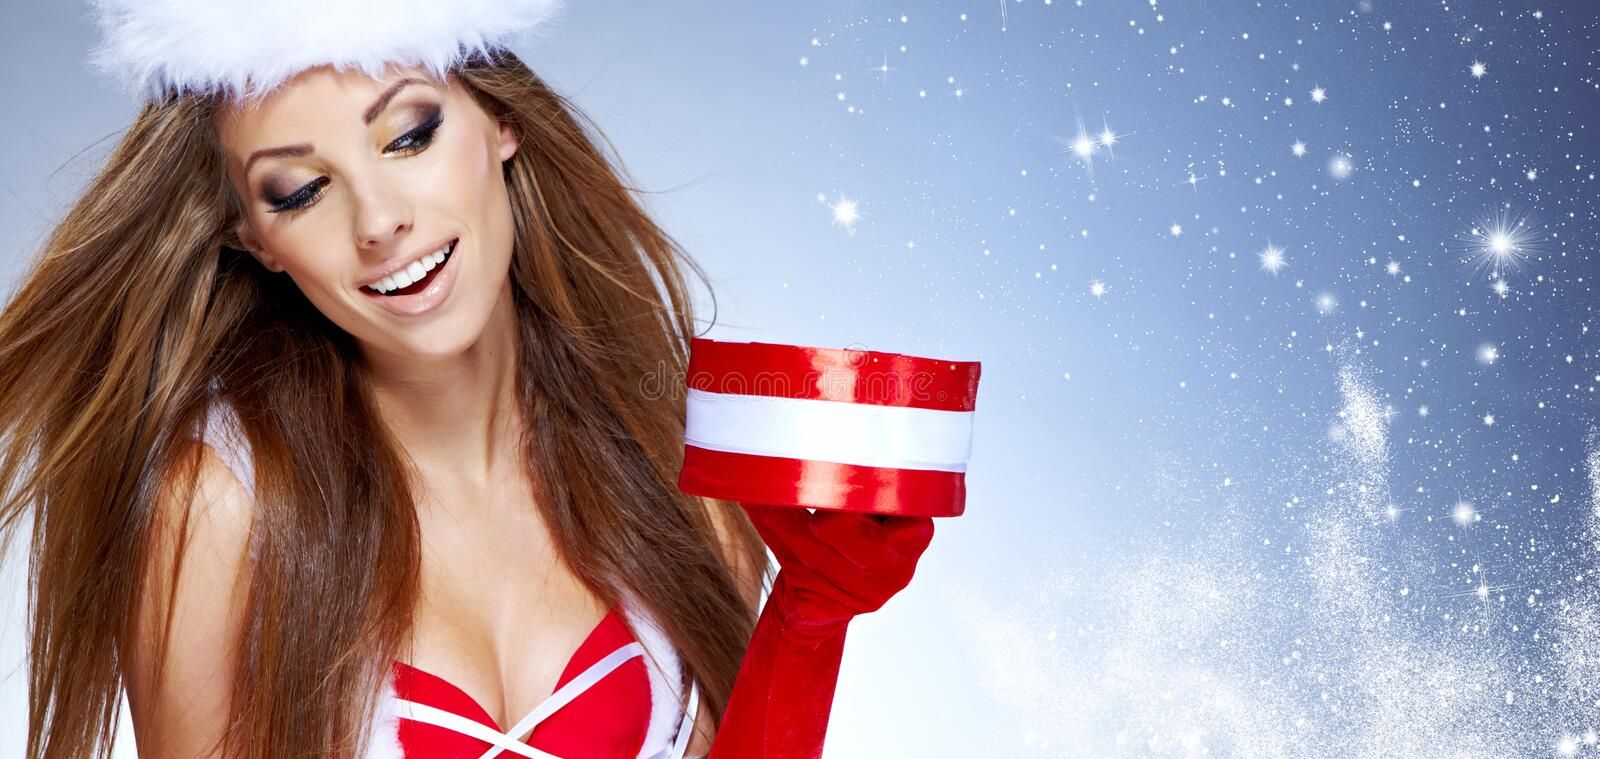 Download Girl Wearing Santa Claus Clothes  With Christmas Stock Photo - Image of joyful, adult: 27818954